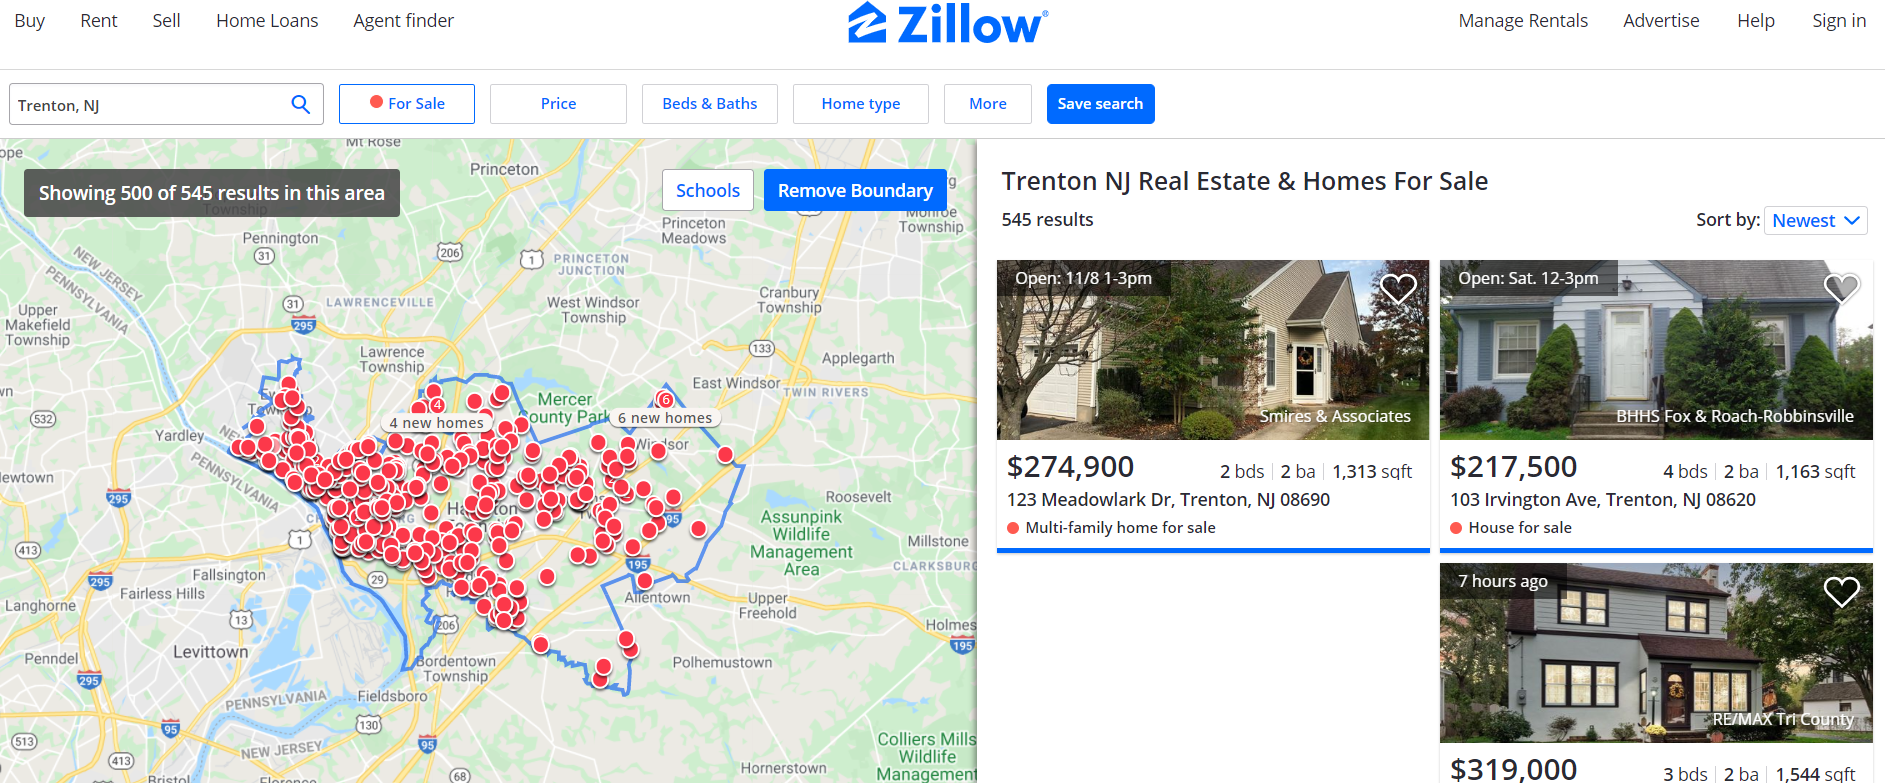 real-estate-data-to-scrape-from-zillow